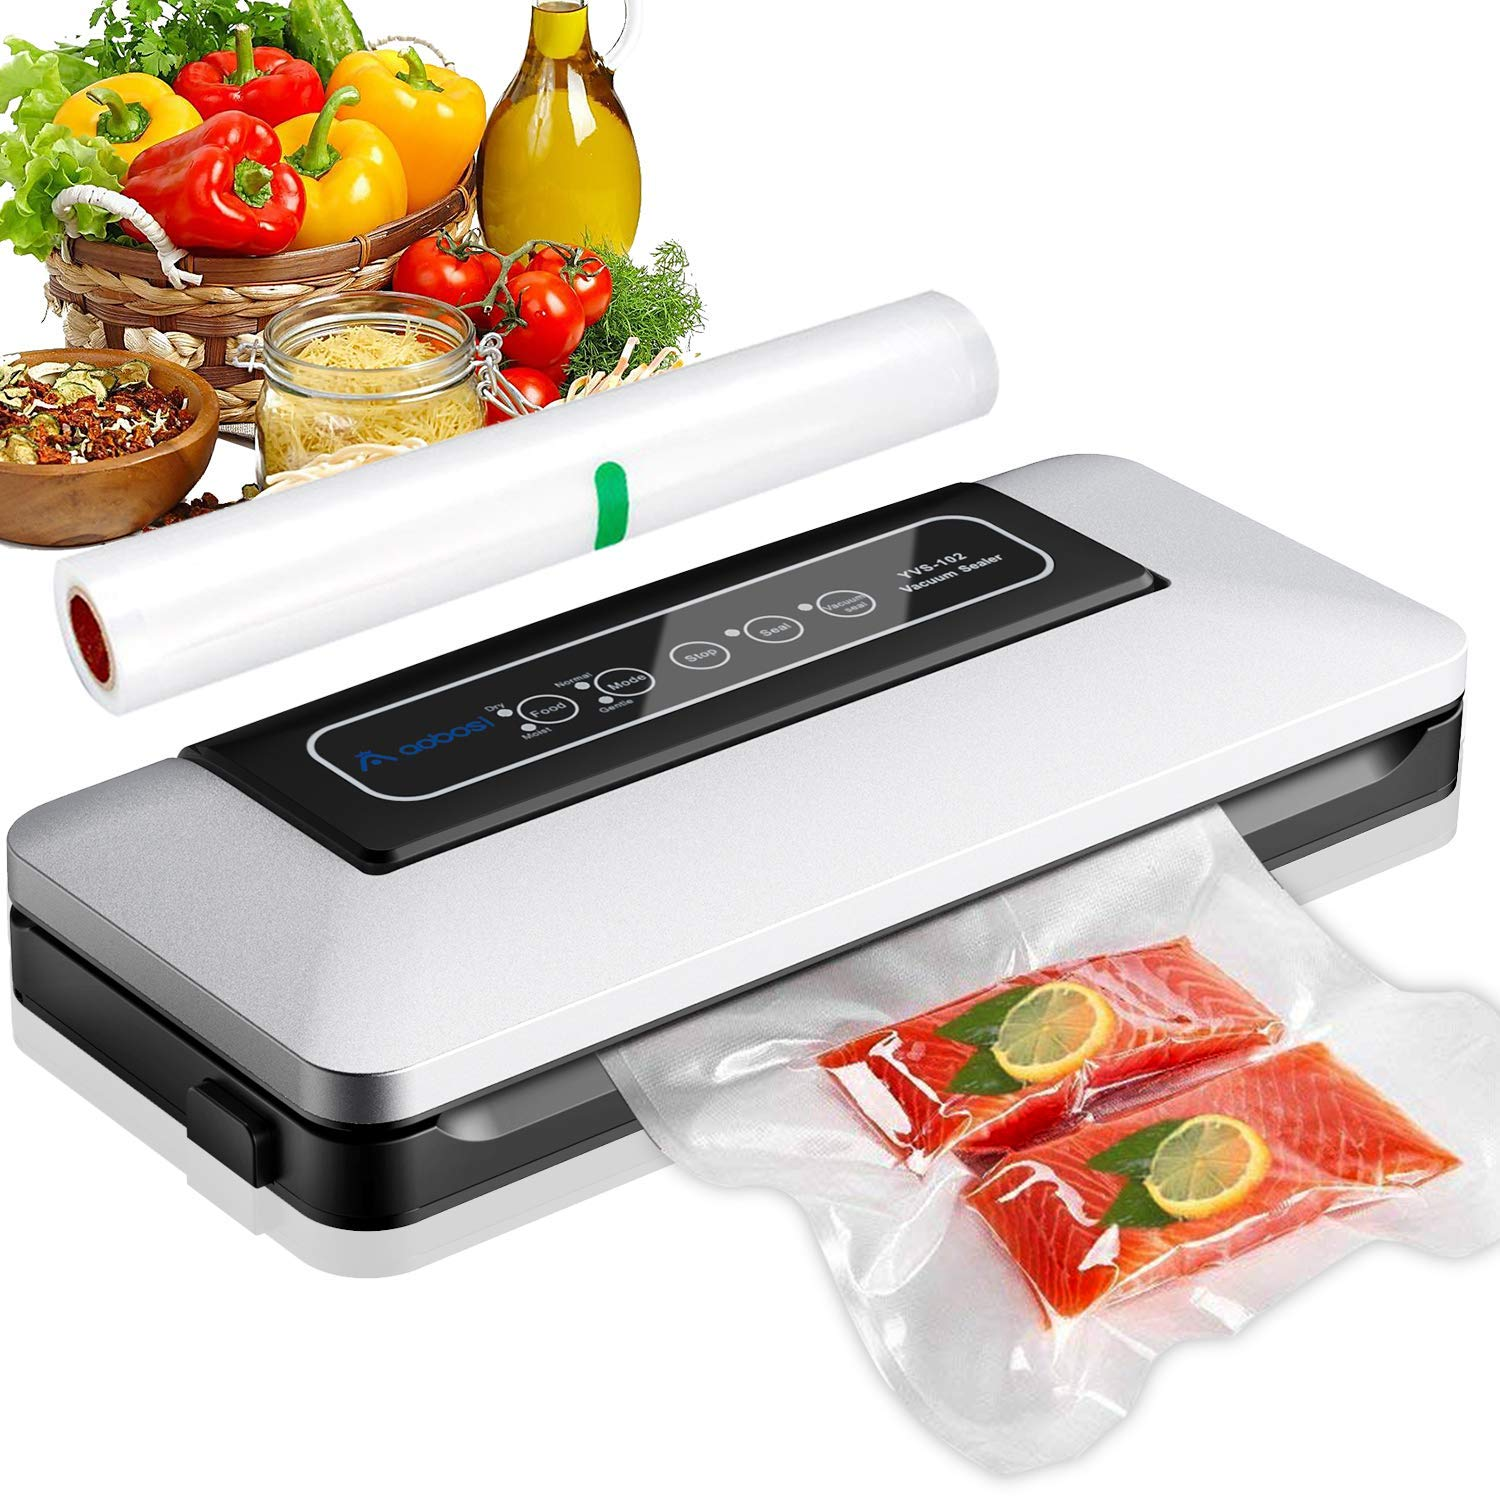 Aobosi Vacuum Sealer Automatic Vacuum Machine with BPA Free Bag Roll for Food Save and Sous Vide Cooking,Super Low Noise,Normal& Gentle Vacuum Modes,Multi-use Vacuum Packing Machine (Silver) by AAOBOSI